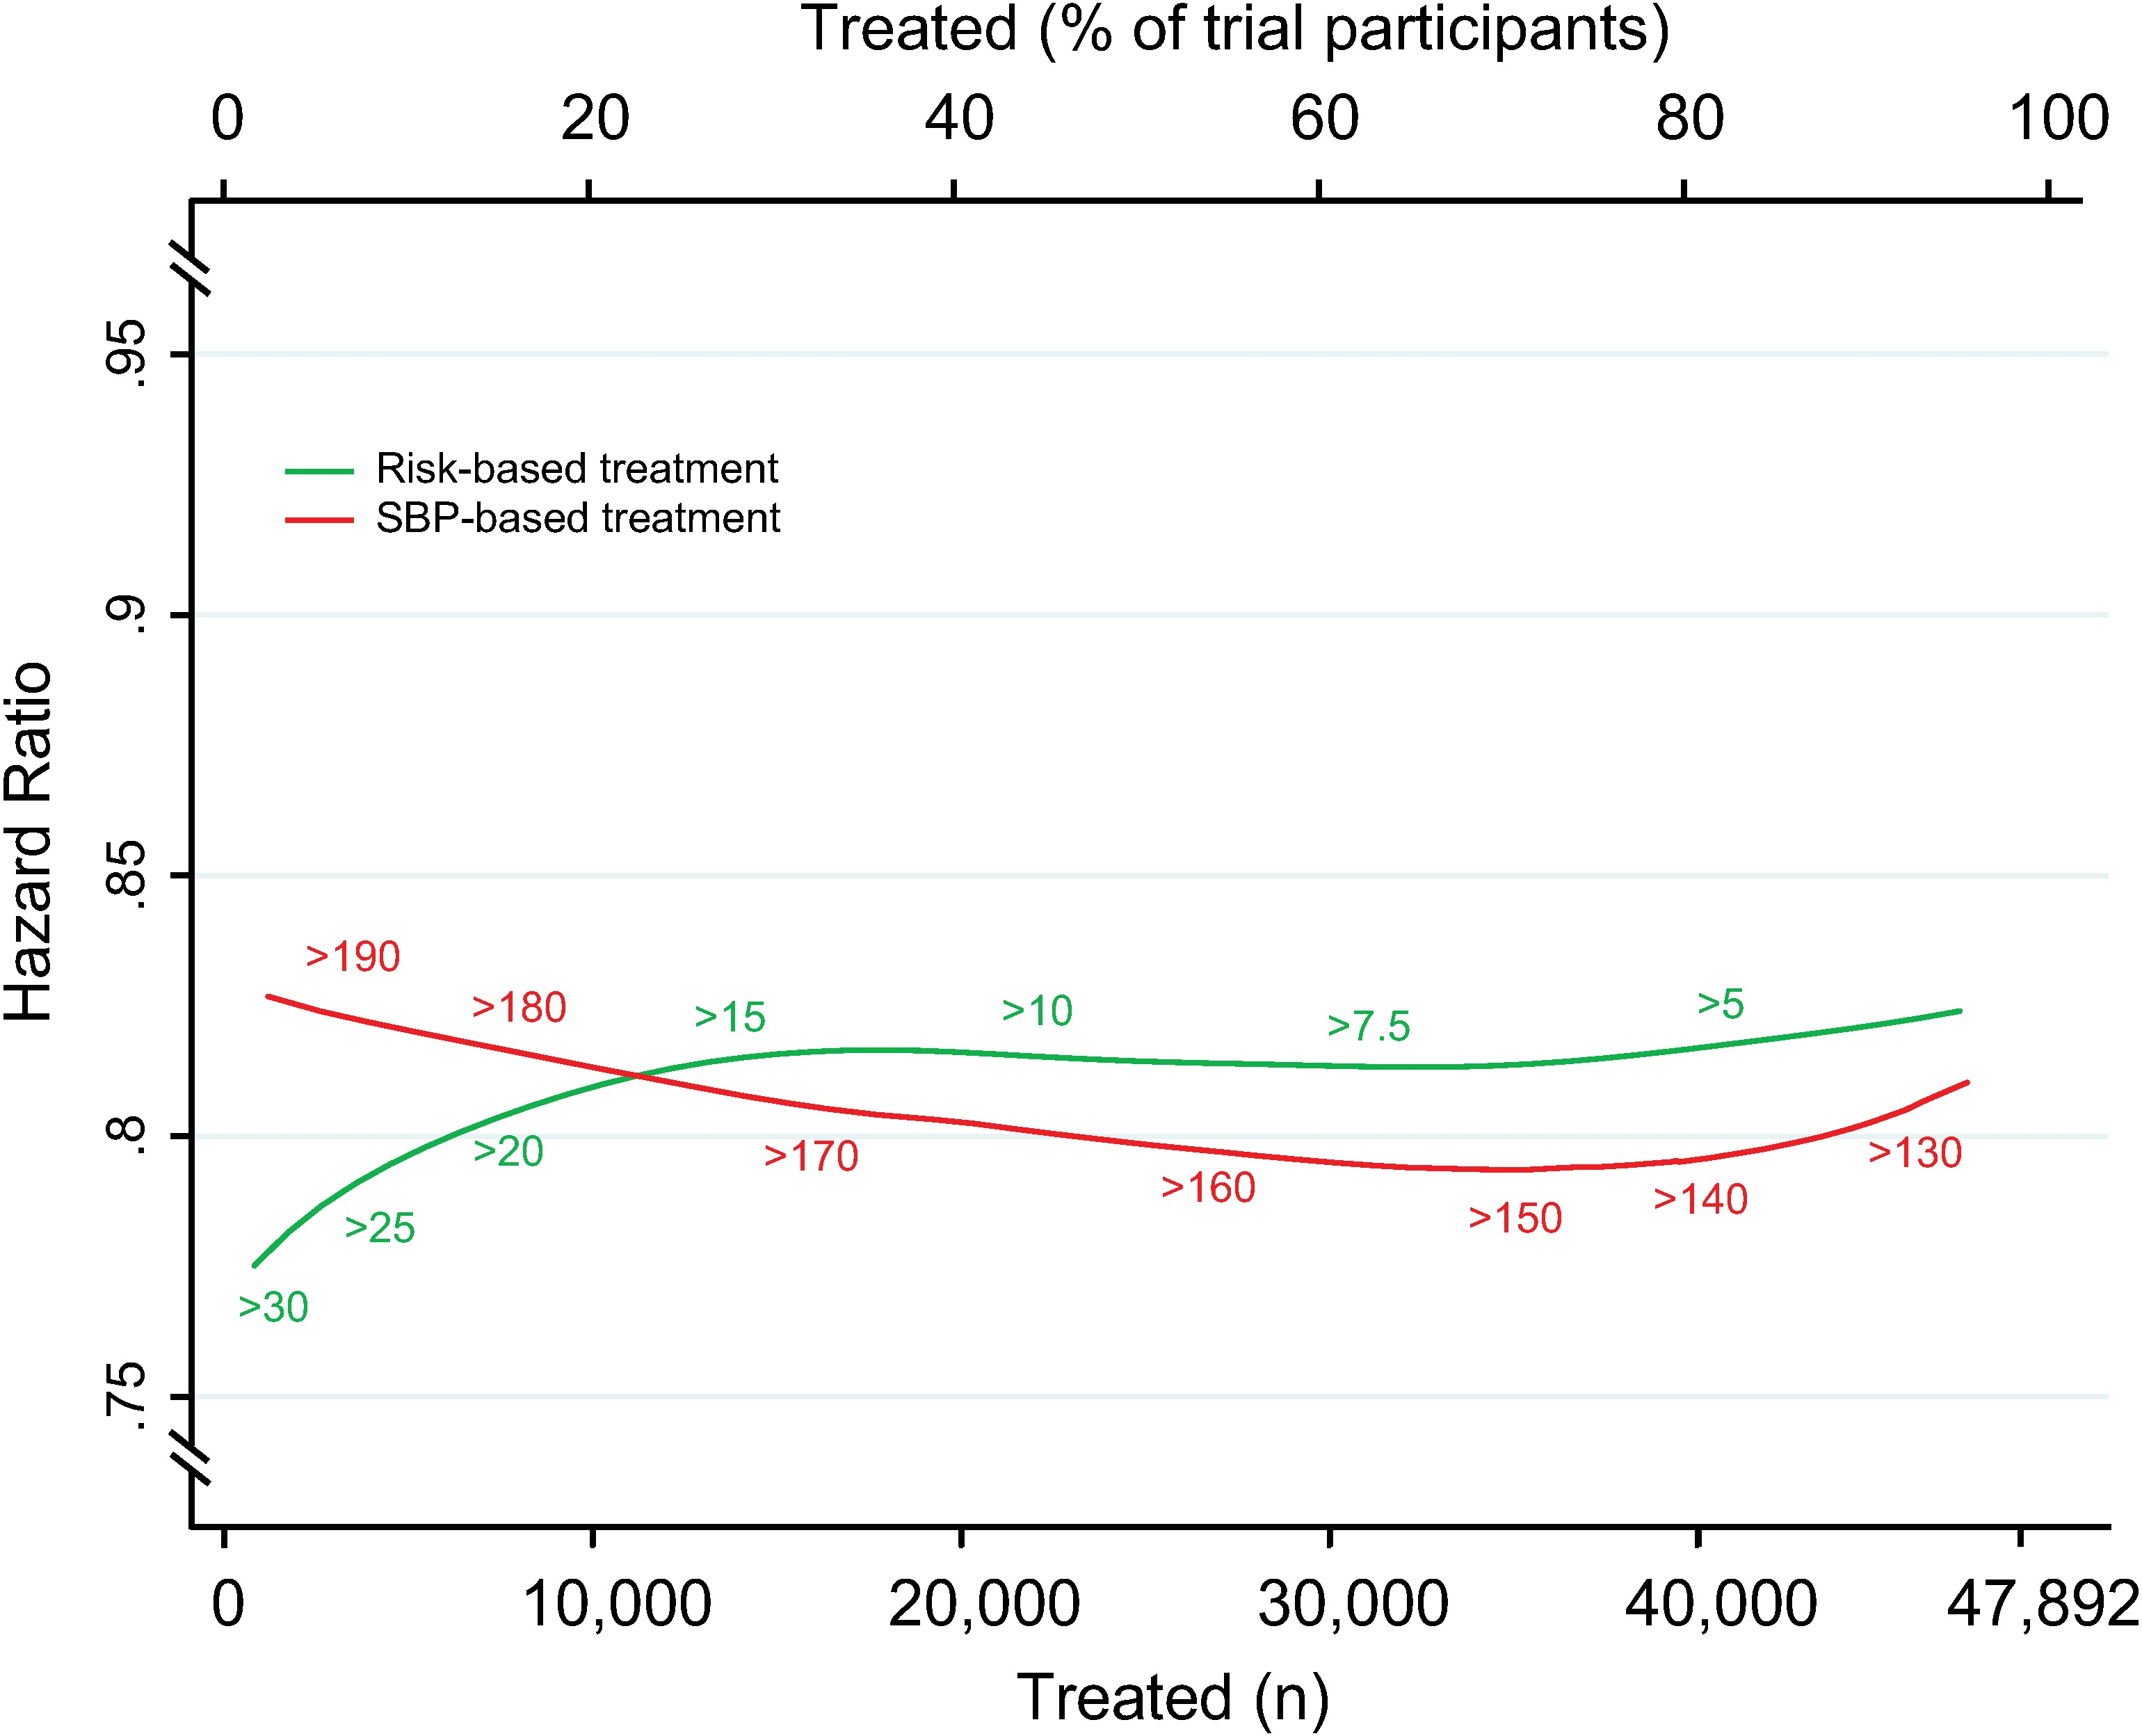 Relative risk reductions by blood pressure-lowering treatment, according to CVD risk and SBP treatment strategies.